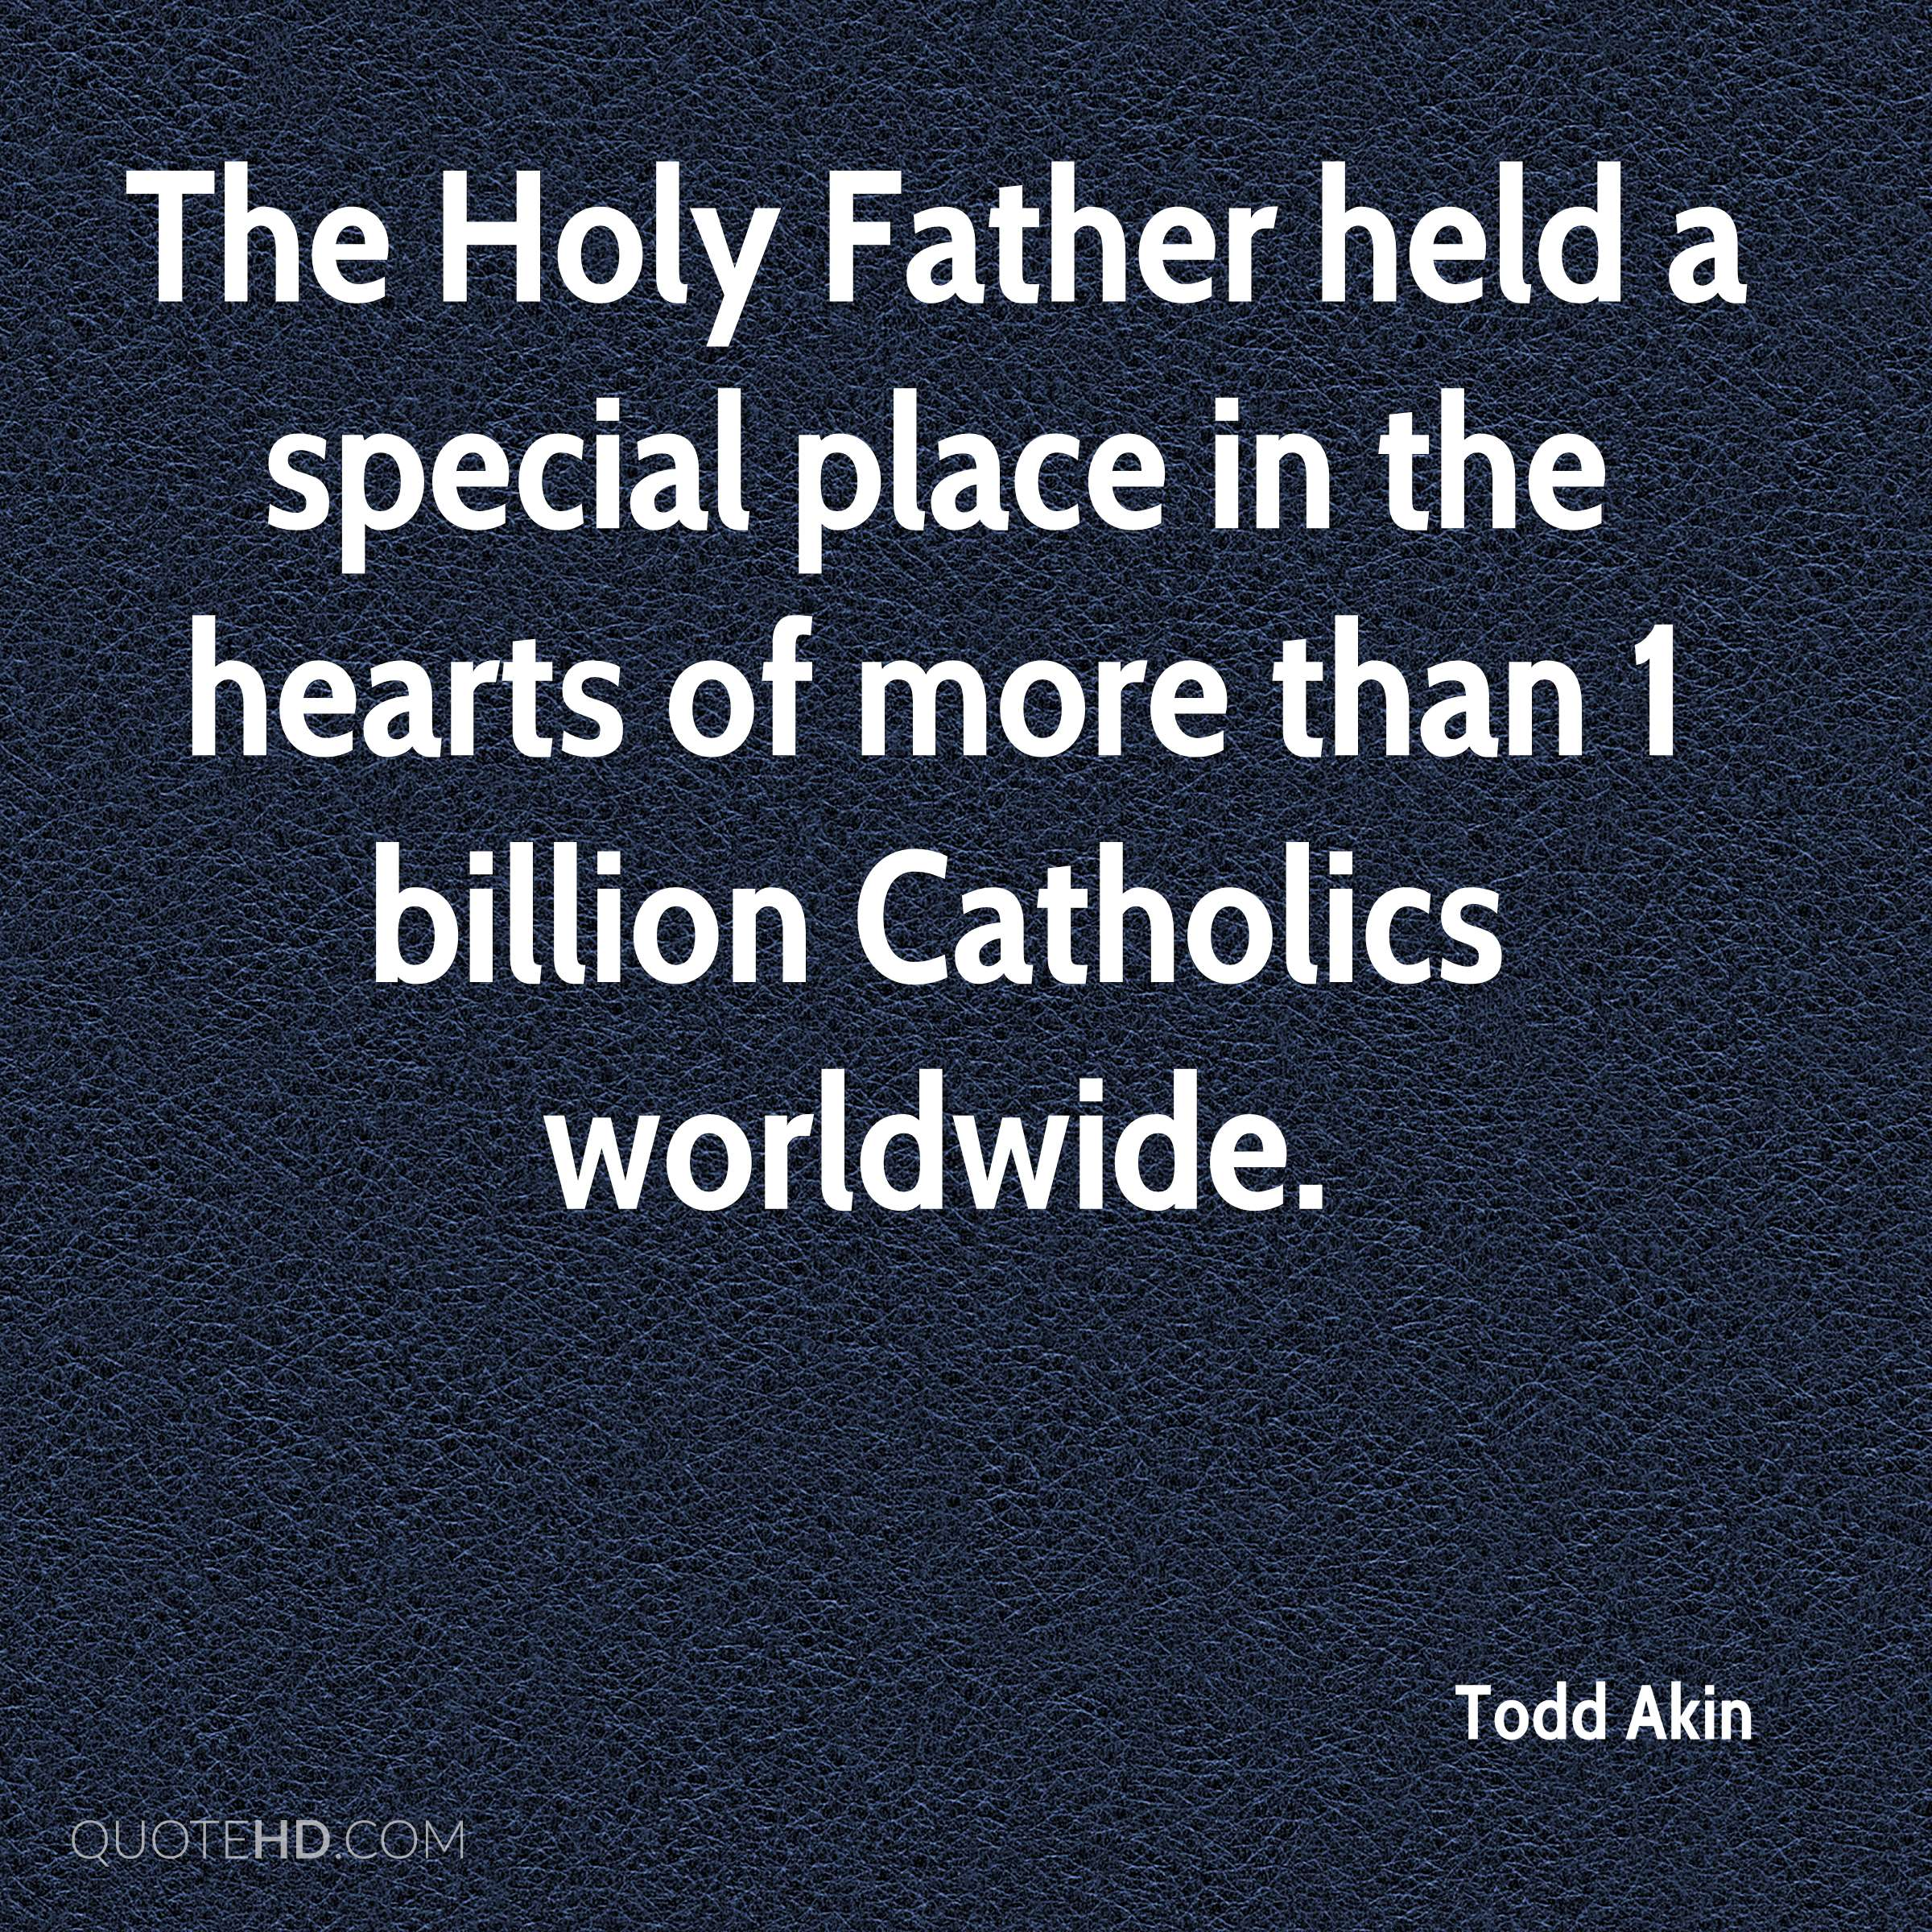 The Holy Father held a special place in the hearts of more than 1 billion Catholics worldwide.